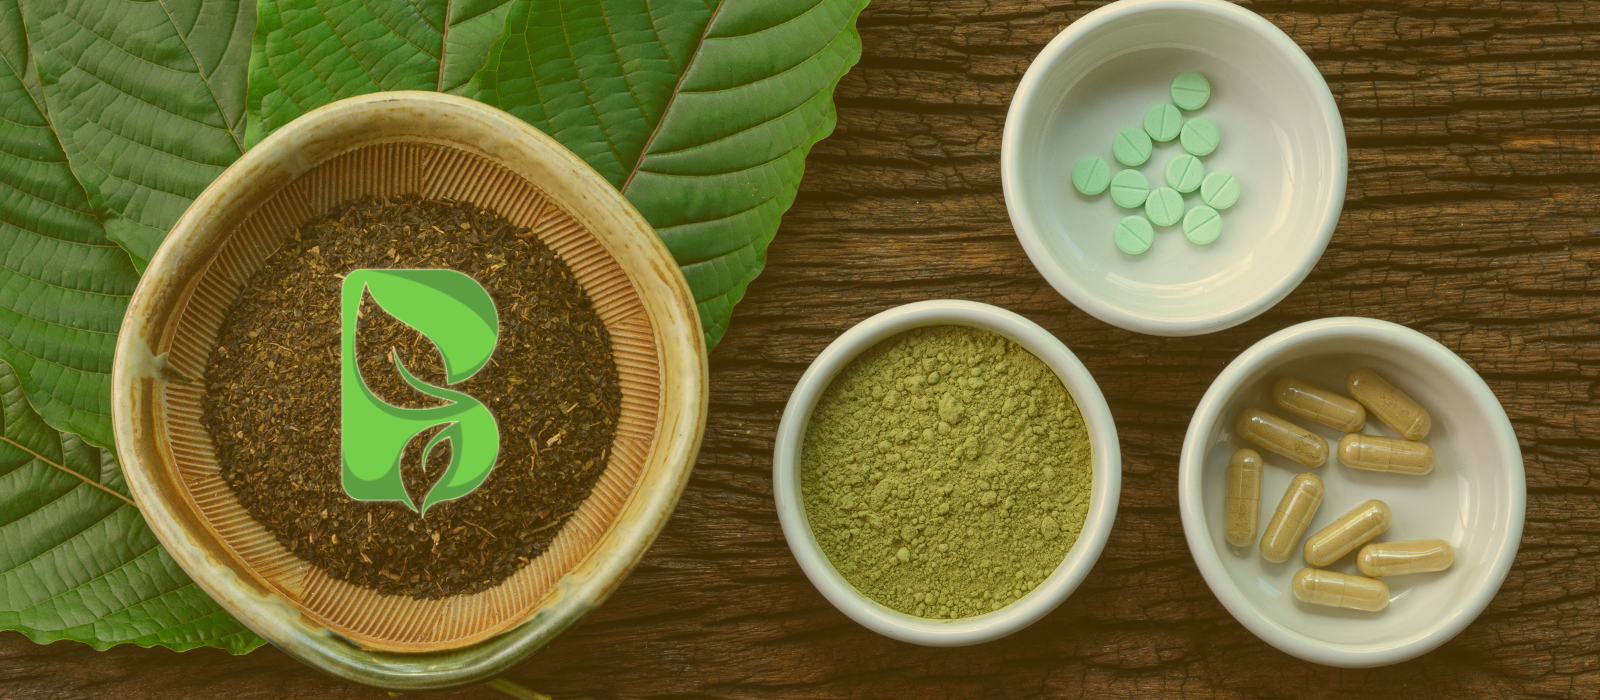 About Kratom